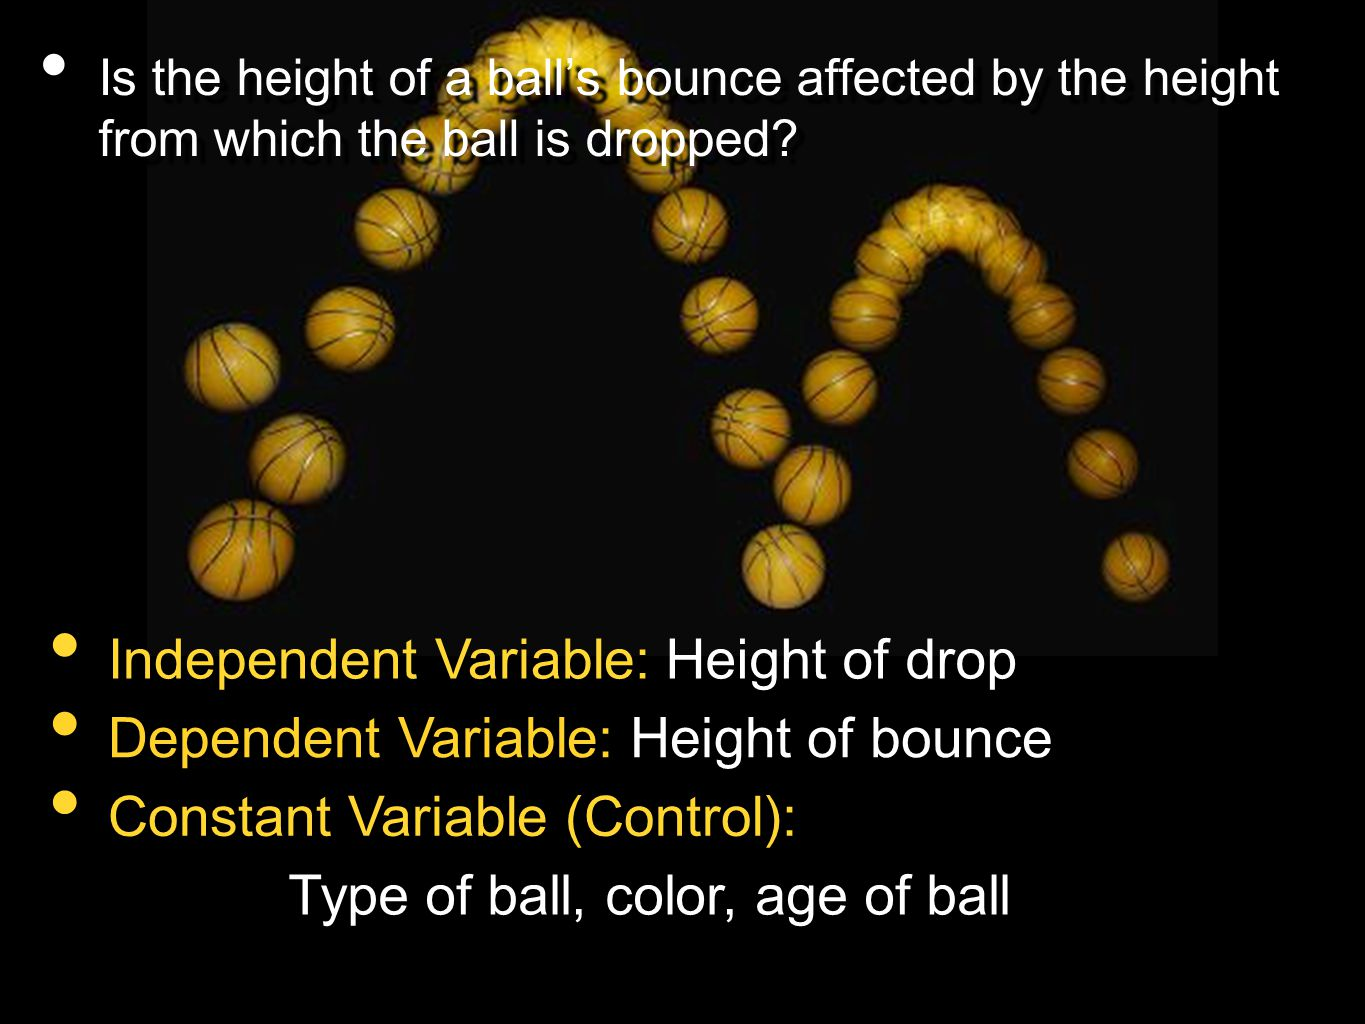 Is the height of a ball's bounce affected by the height from which the ball is dropped? Independent Variable: Dependent Variable: Constant Variable (C